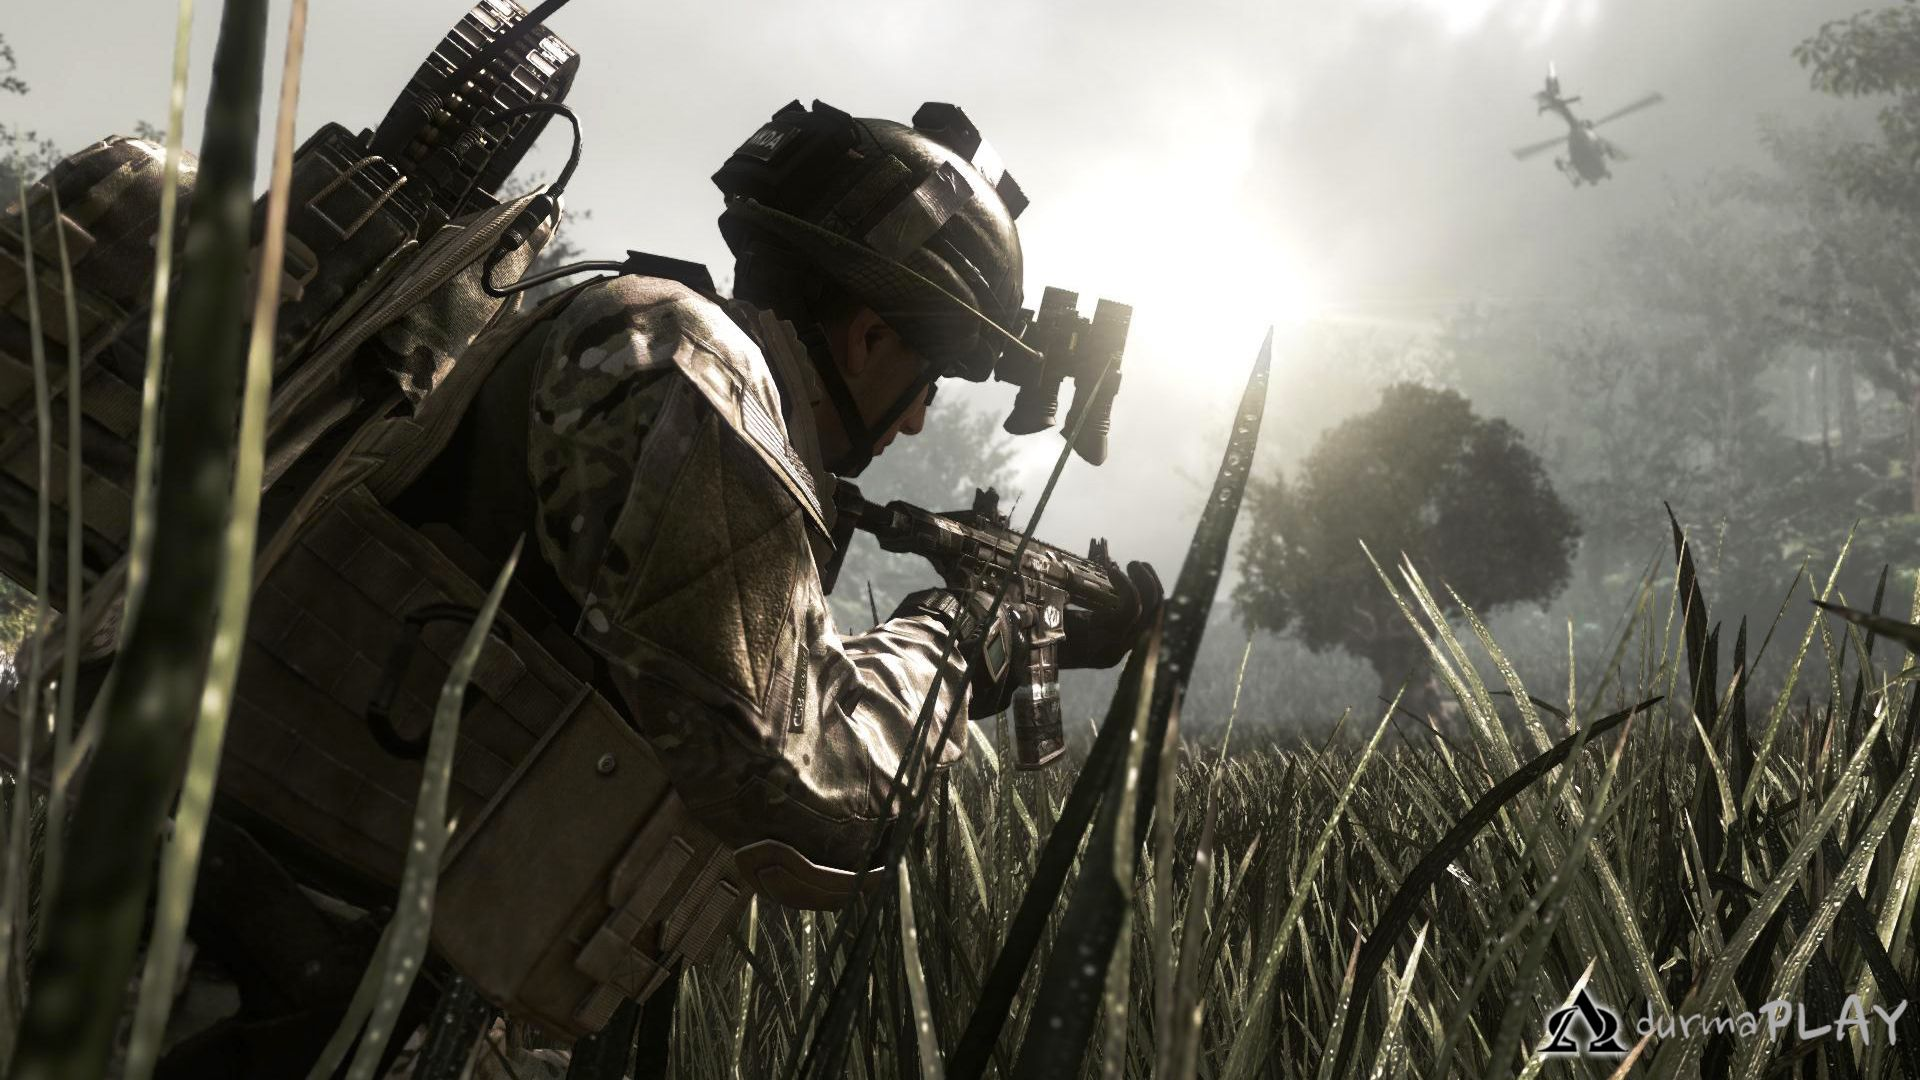 https://www.durmaplay.com/product/call-of-duty-ghosts-satin-al-ps4 pc-call-of-duty-ghosts-screenshot-003-ps4.jpg 1.920×1.080 piksel